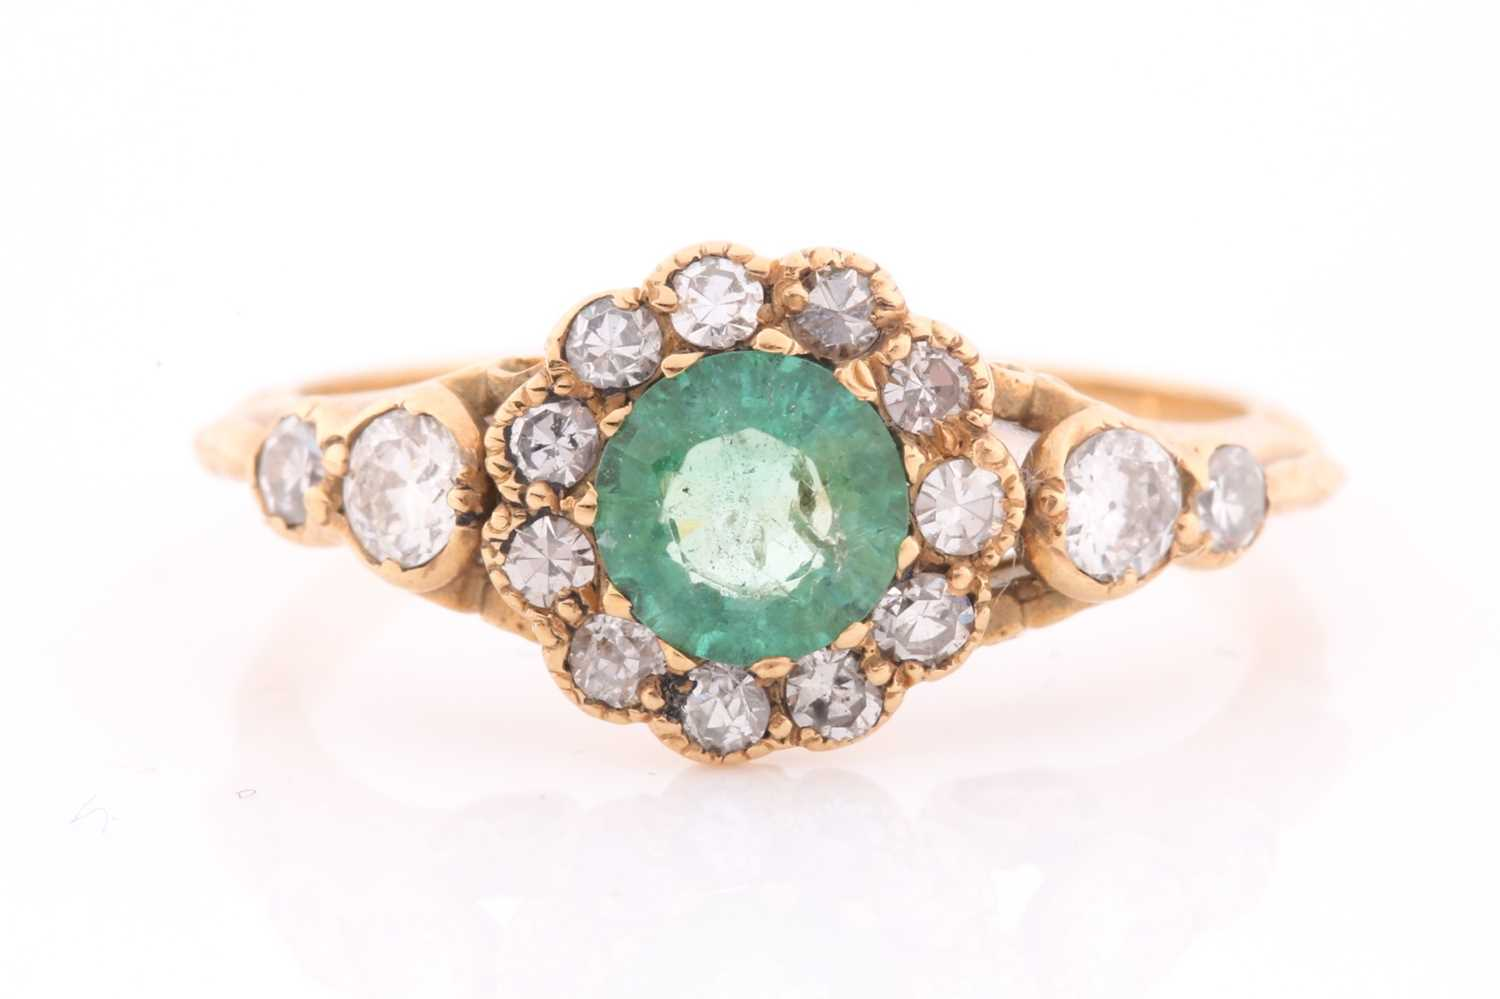 An 18ct yellow gold, diamond, and emerald ring, set with a mixed round-cut emerald, approximately